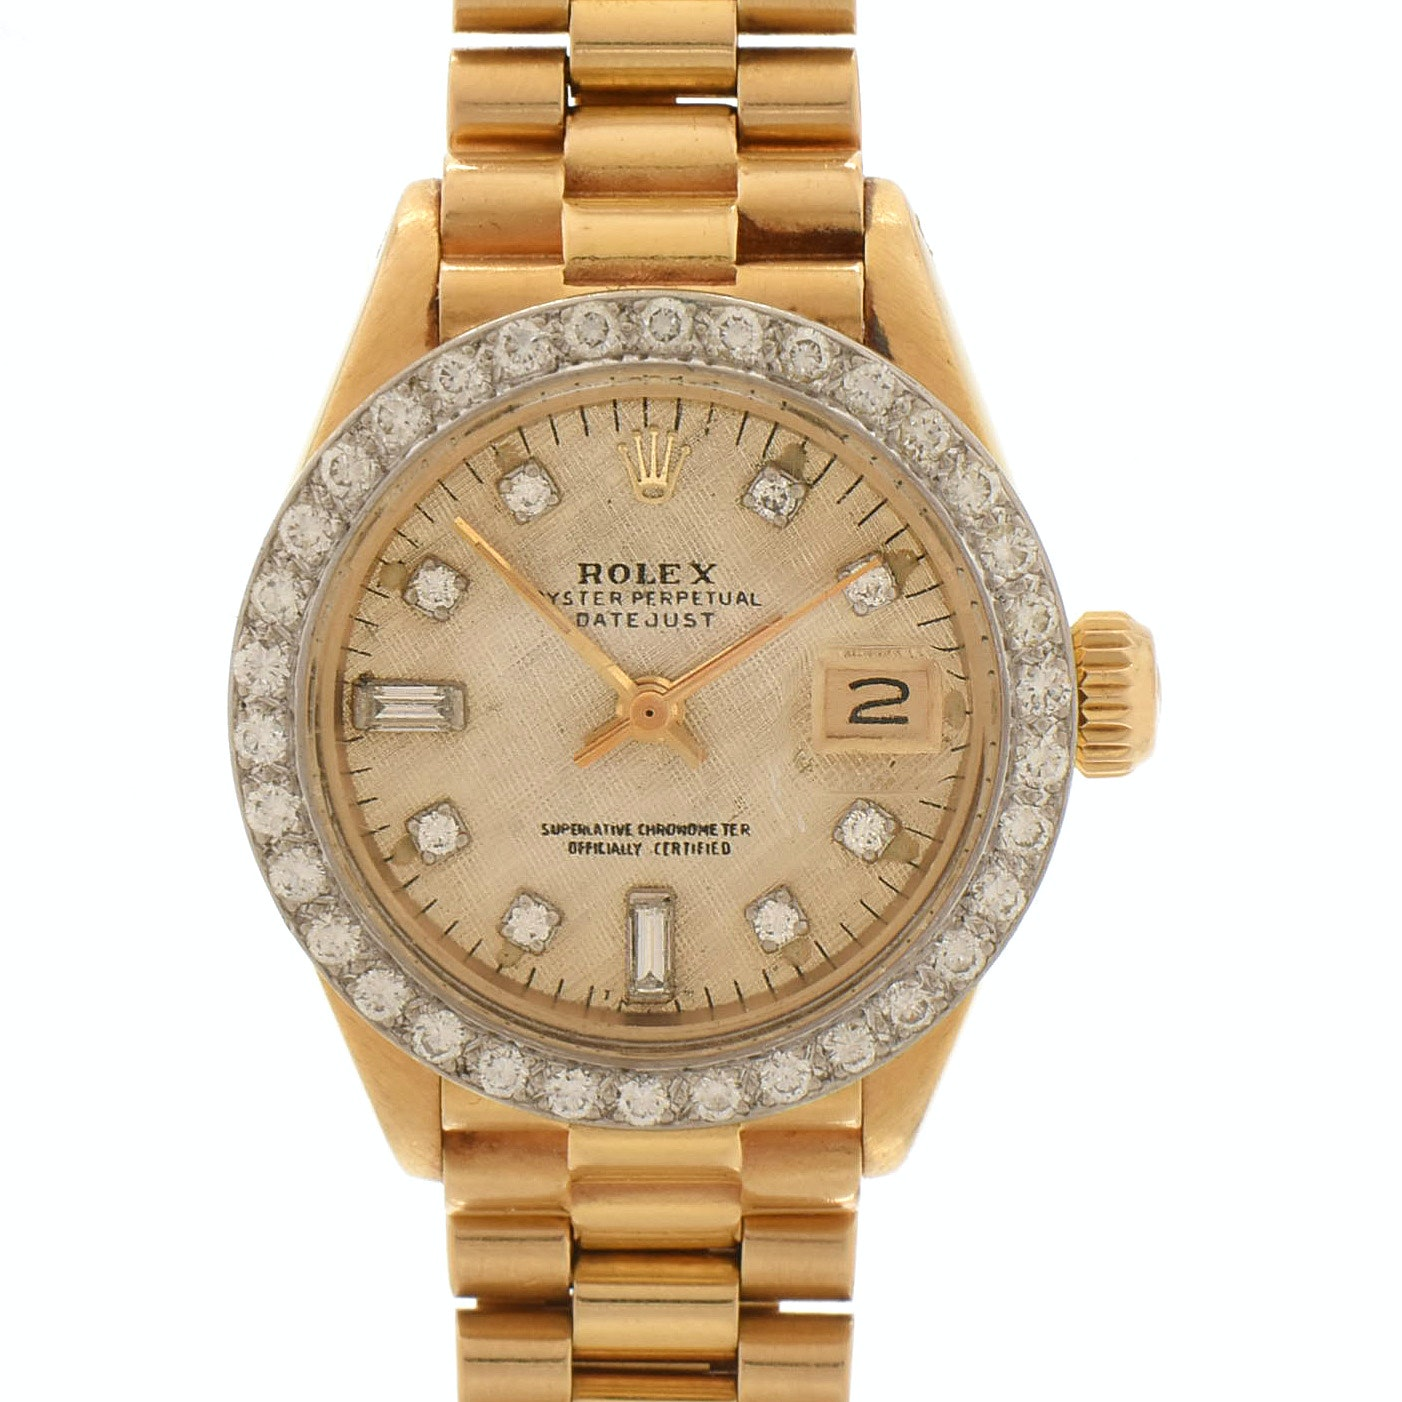 Rolex 18K Yellow Gold and Diamond Oyster Perpetual DateJust Wristwatch